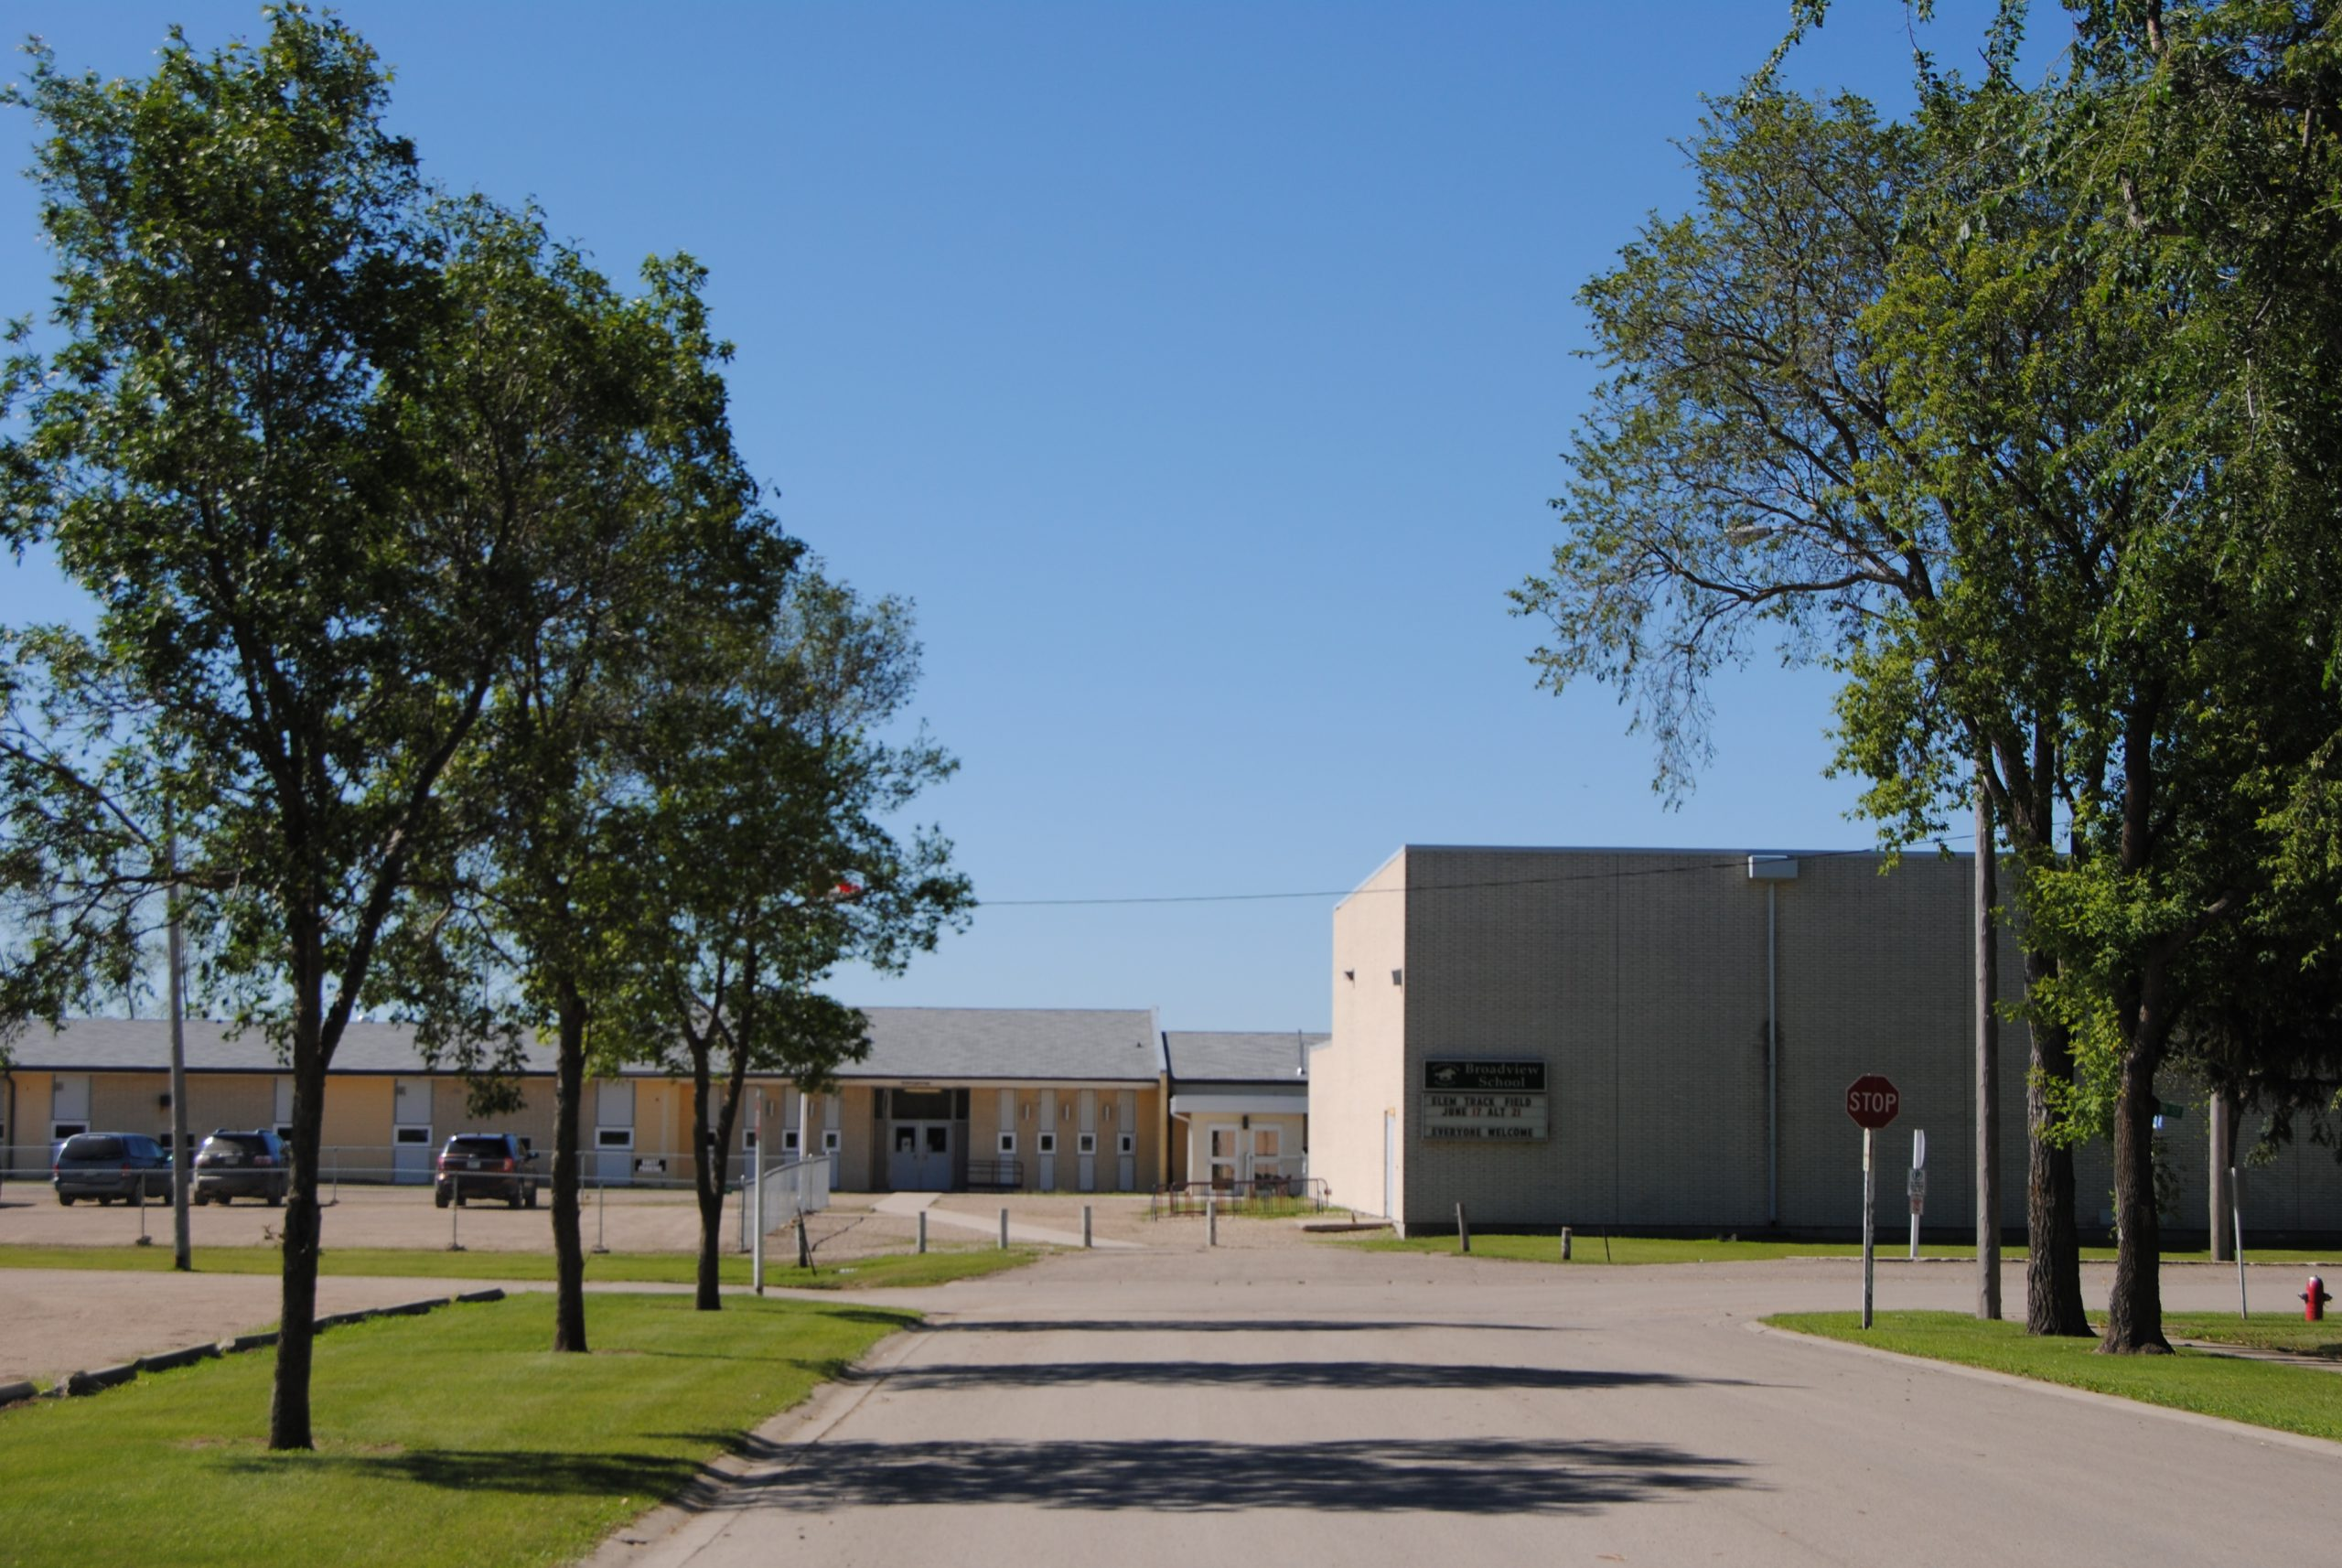 Broadview School placed into Hold and Secure